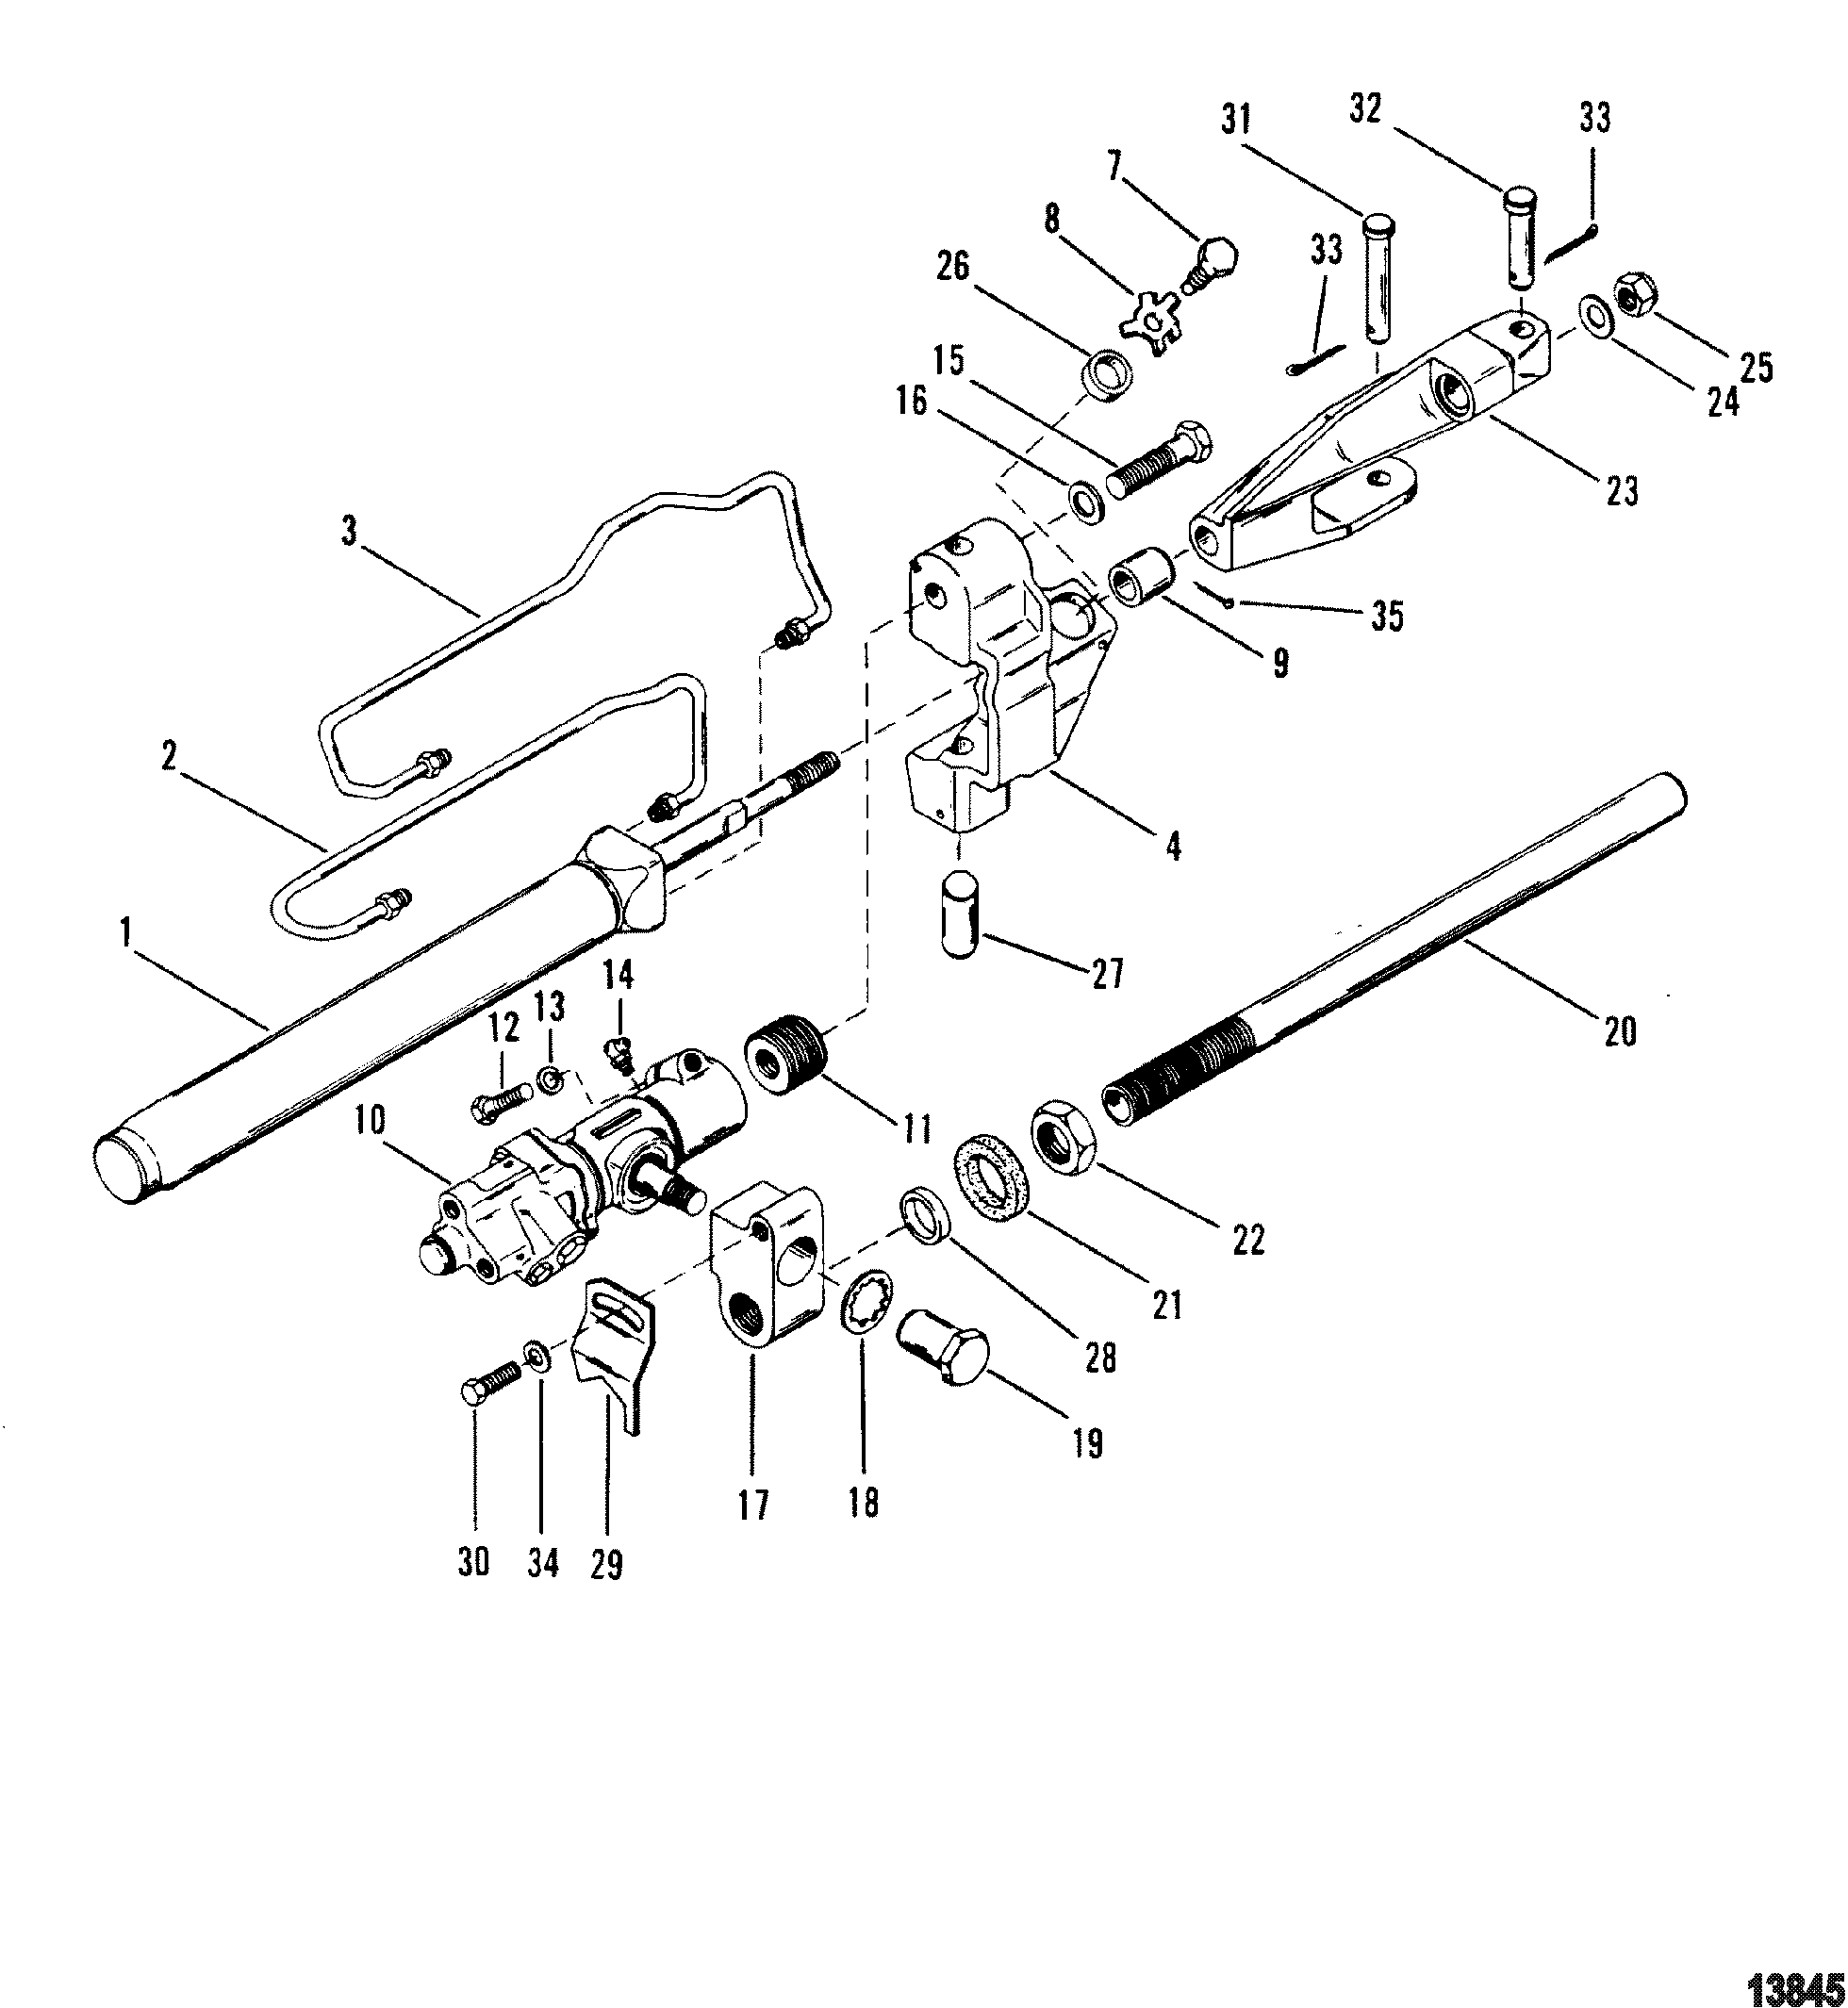 Cooling Diagram 183083 moreover Ford Naa Parts Diagram New Ford Steering Radius Rod Front Axle Bare Co Usa as well S also 20121001 pilot Operated Check Valve likewise Duct AirHandler. on exhaust system diagram